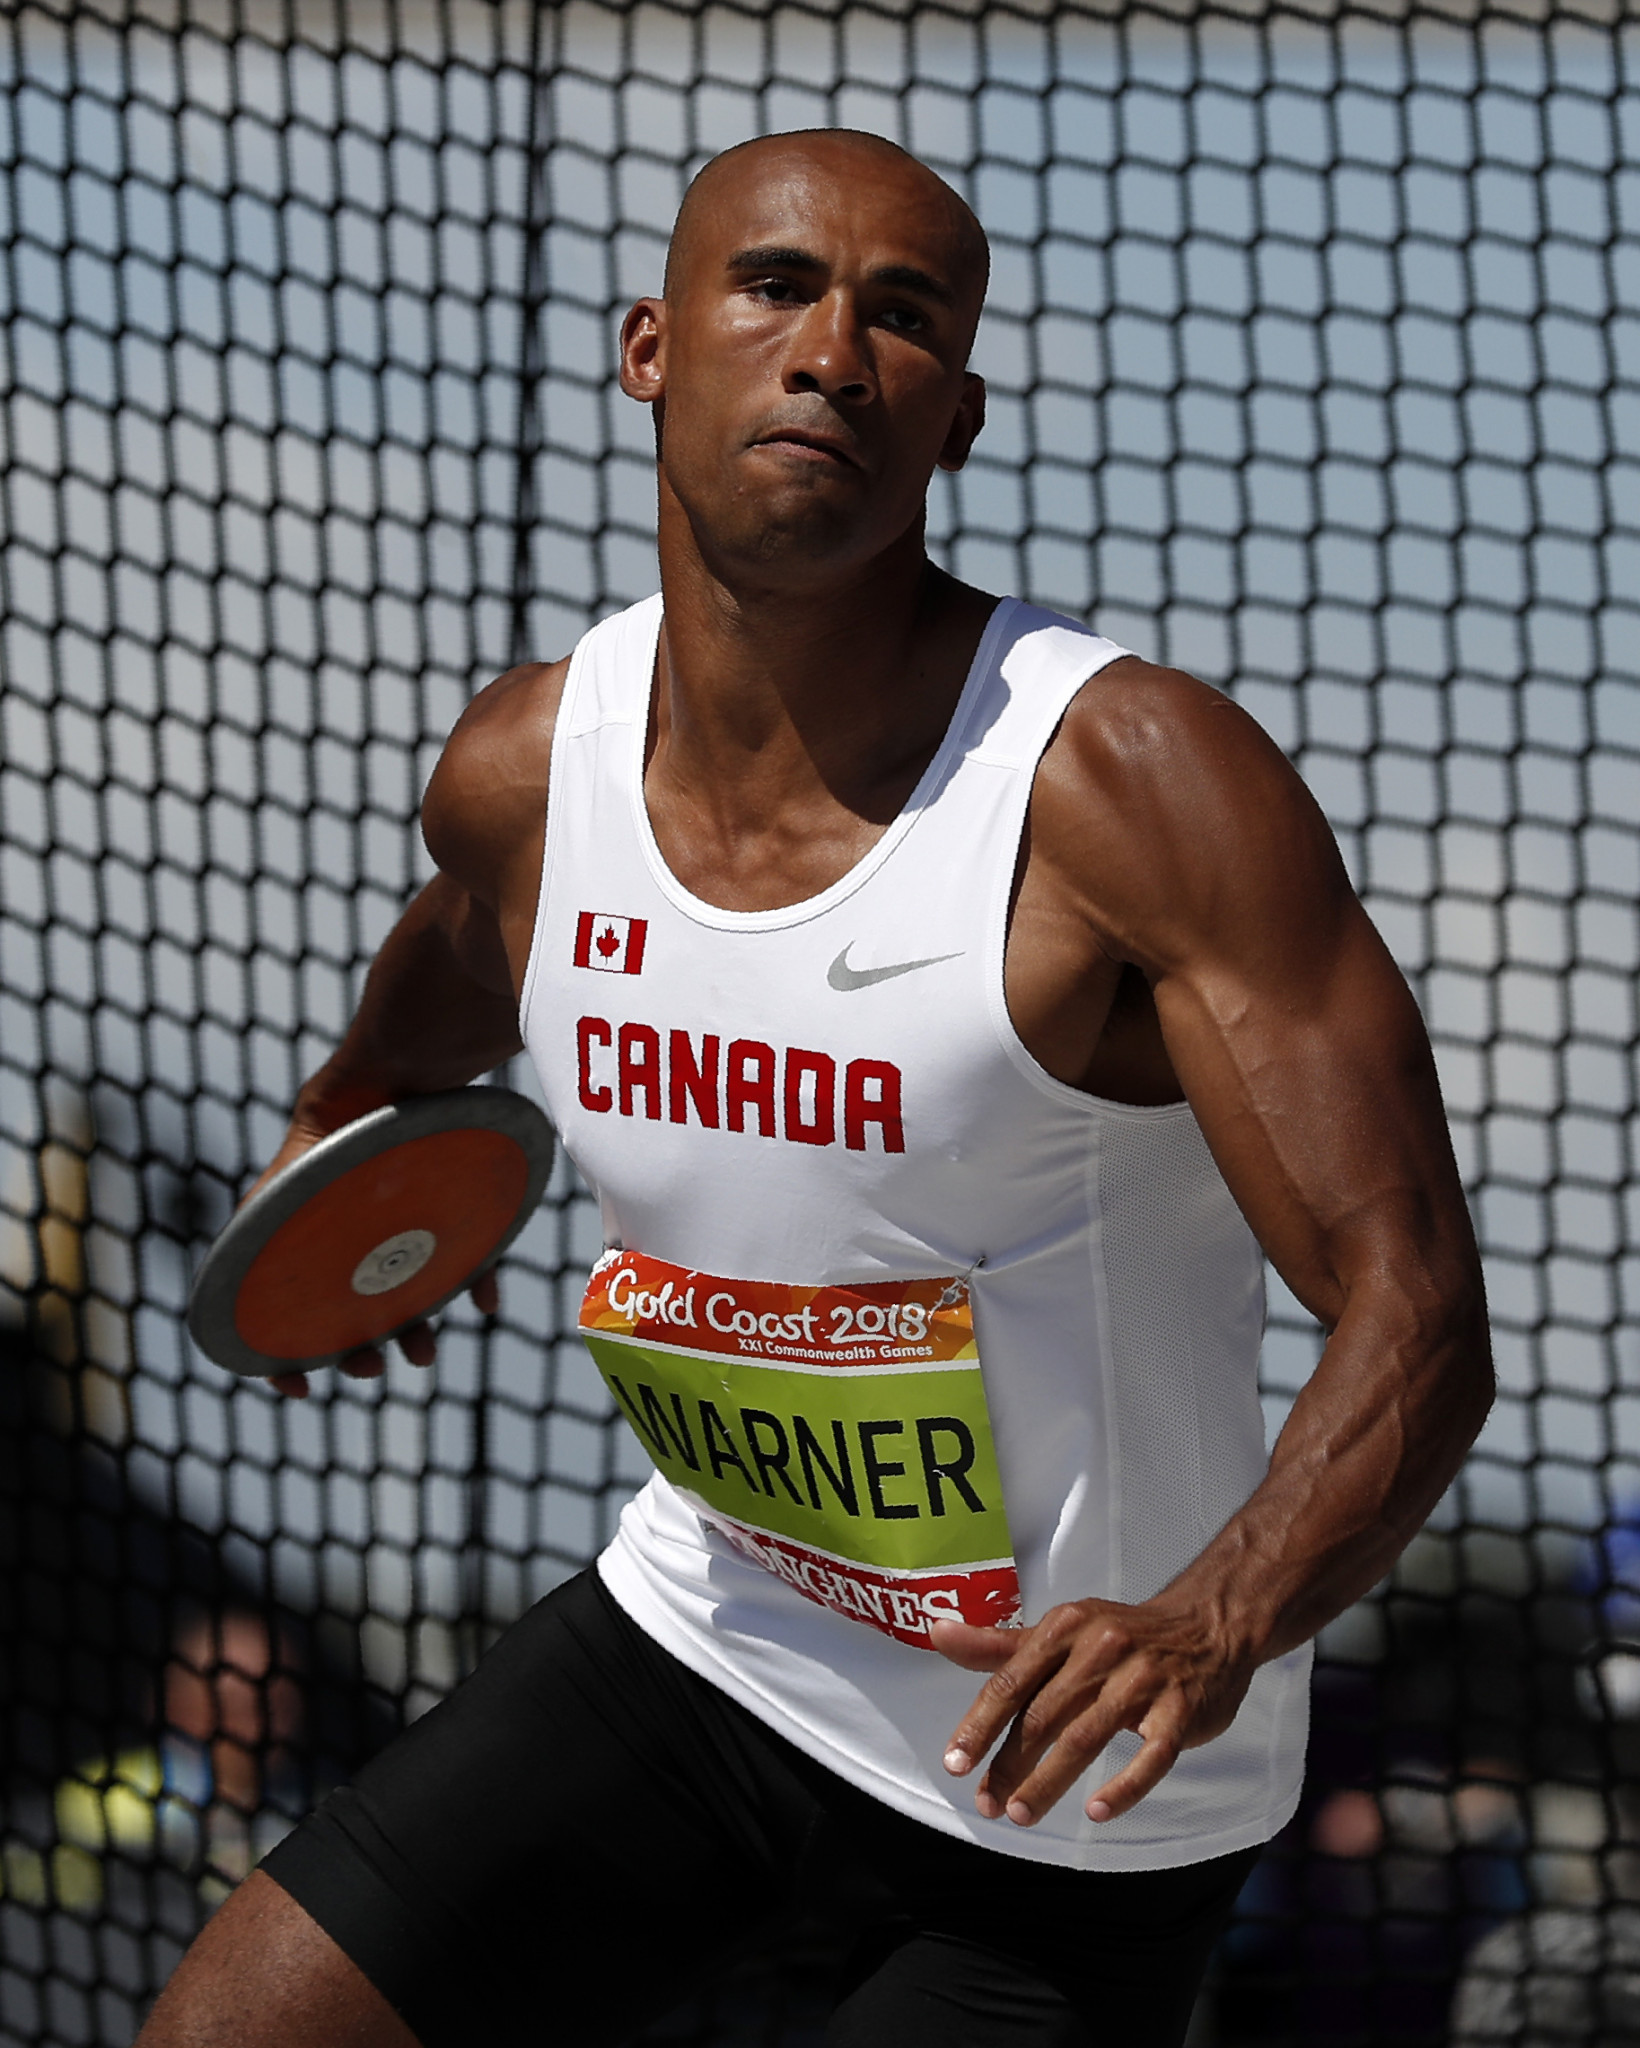 Canada's Damian Warner will seek a record-equalling fifth win at the IAAF Combined Events Challenge meeting in Götzis this weekend ©Getty Images